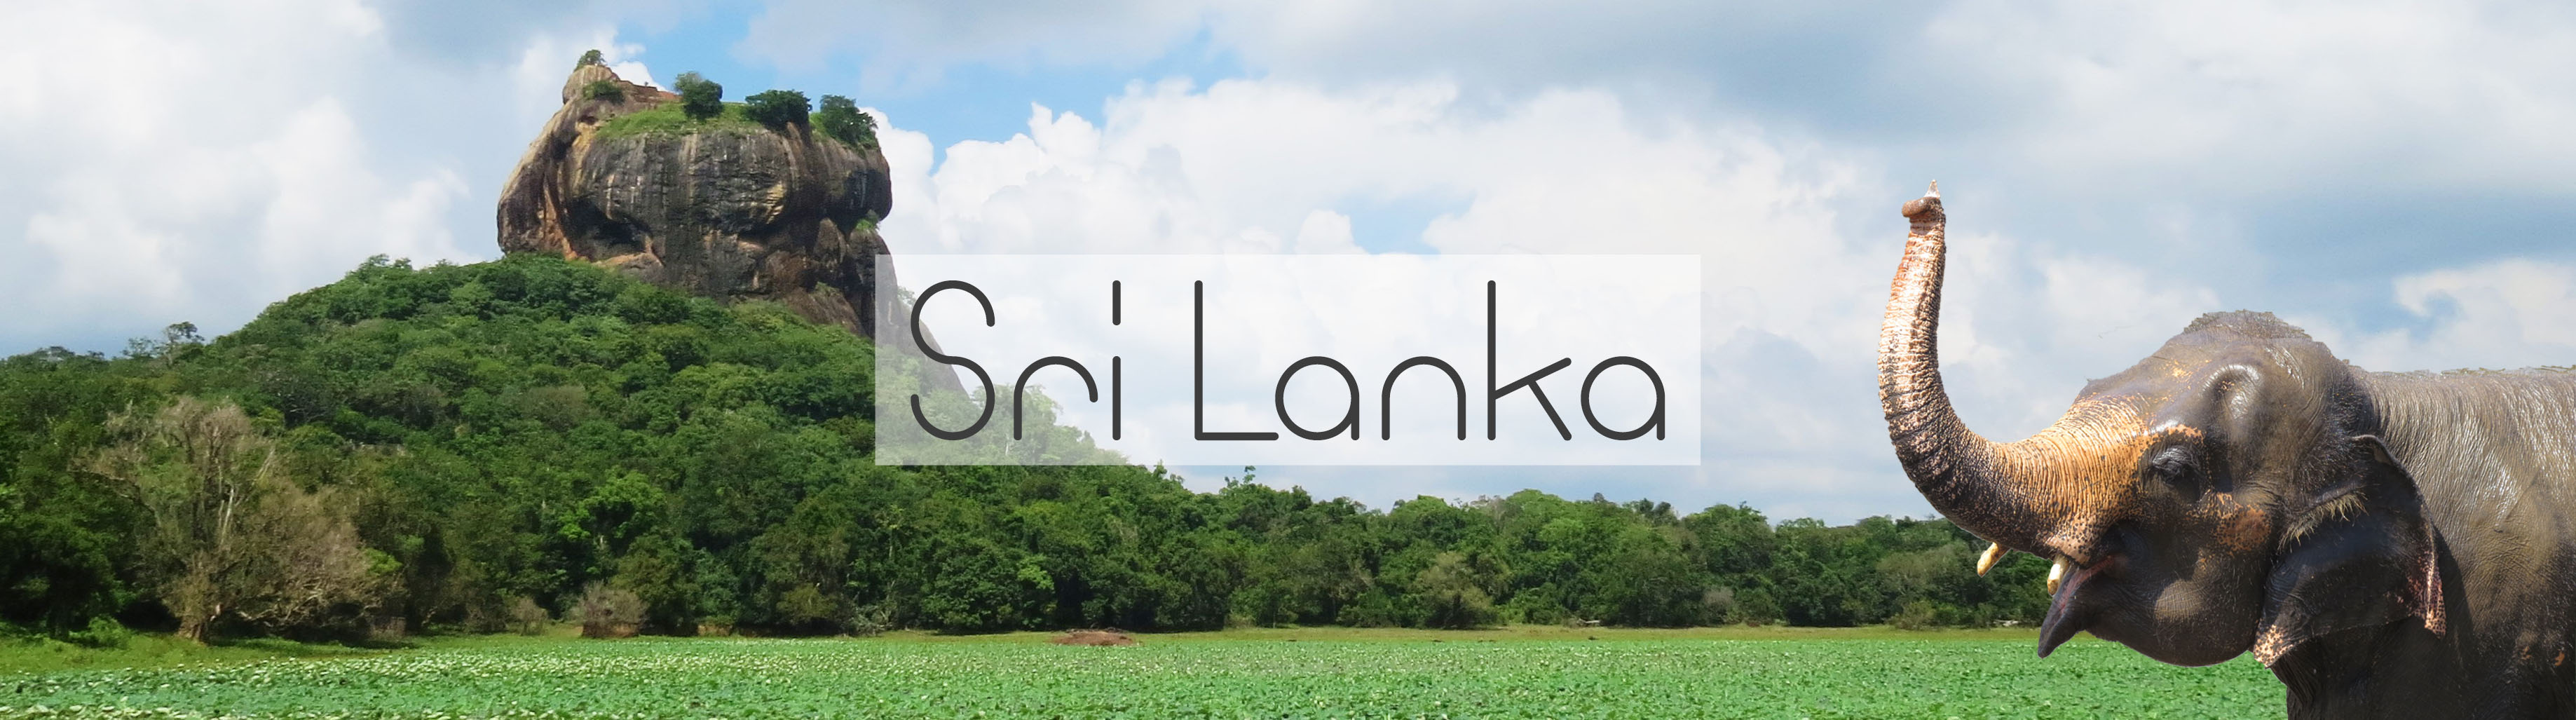 Sri Lanka reisinfo voor backpacken